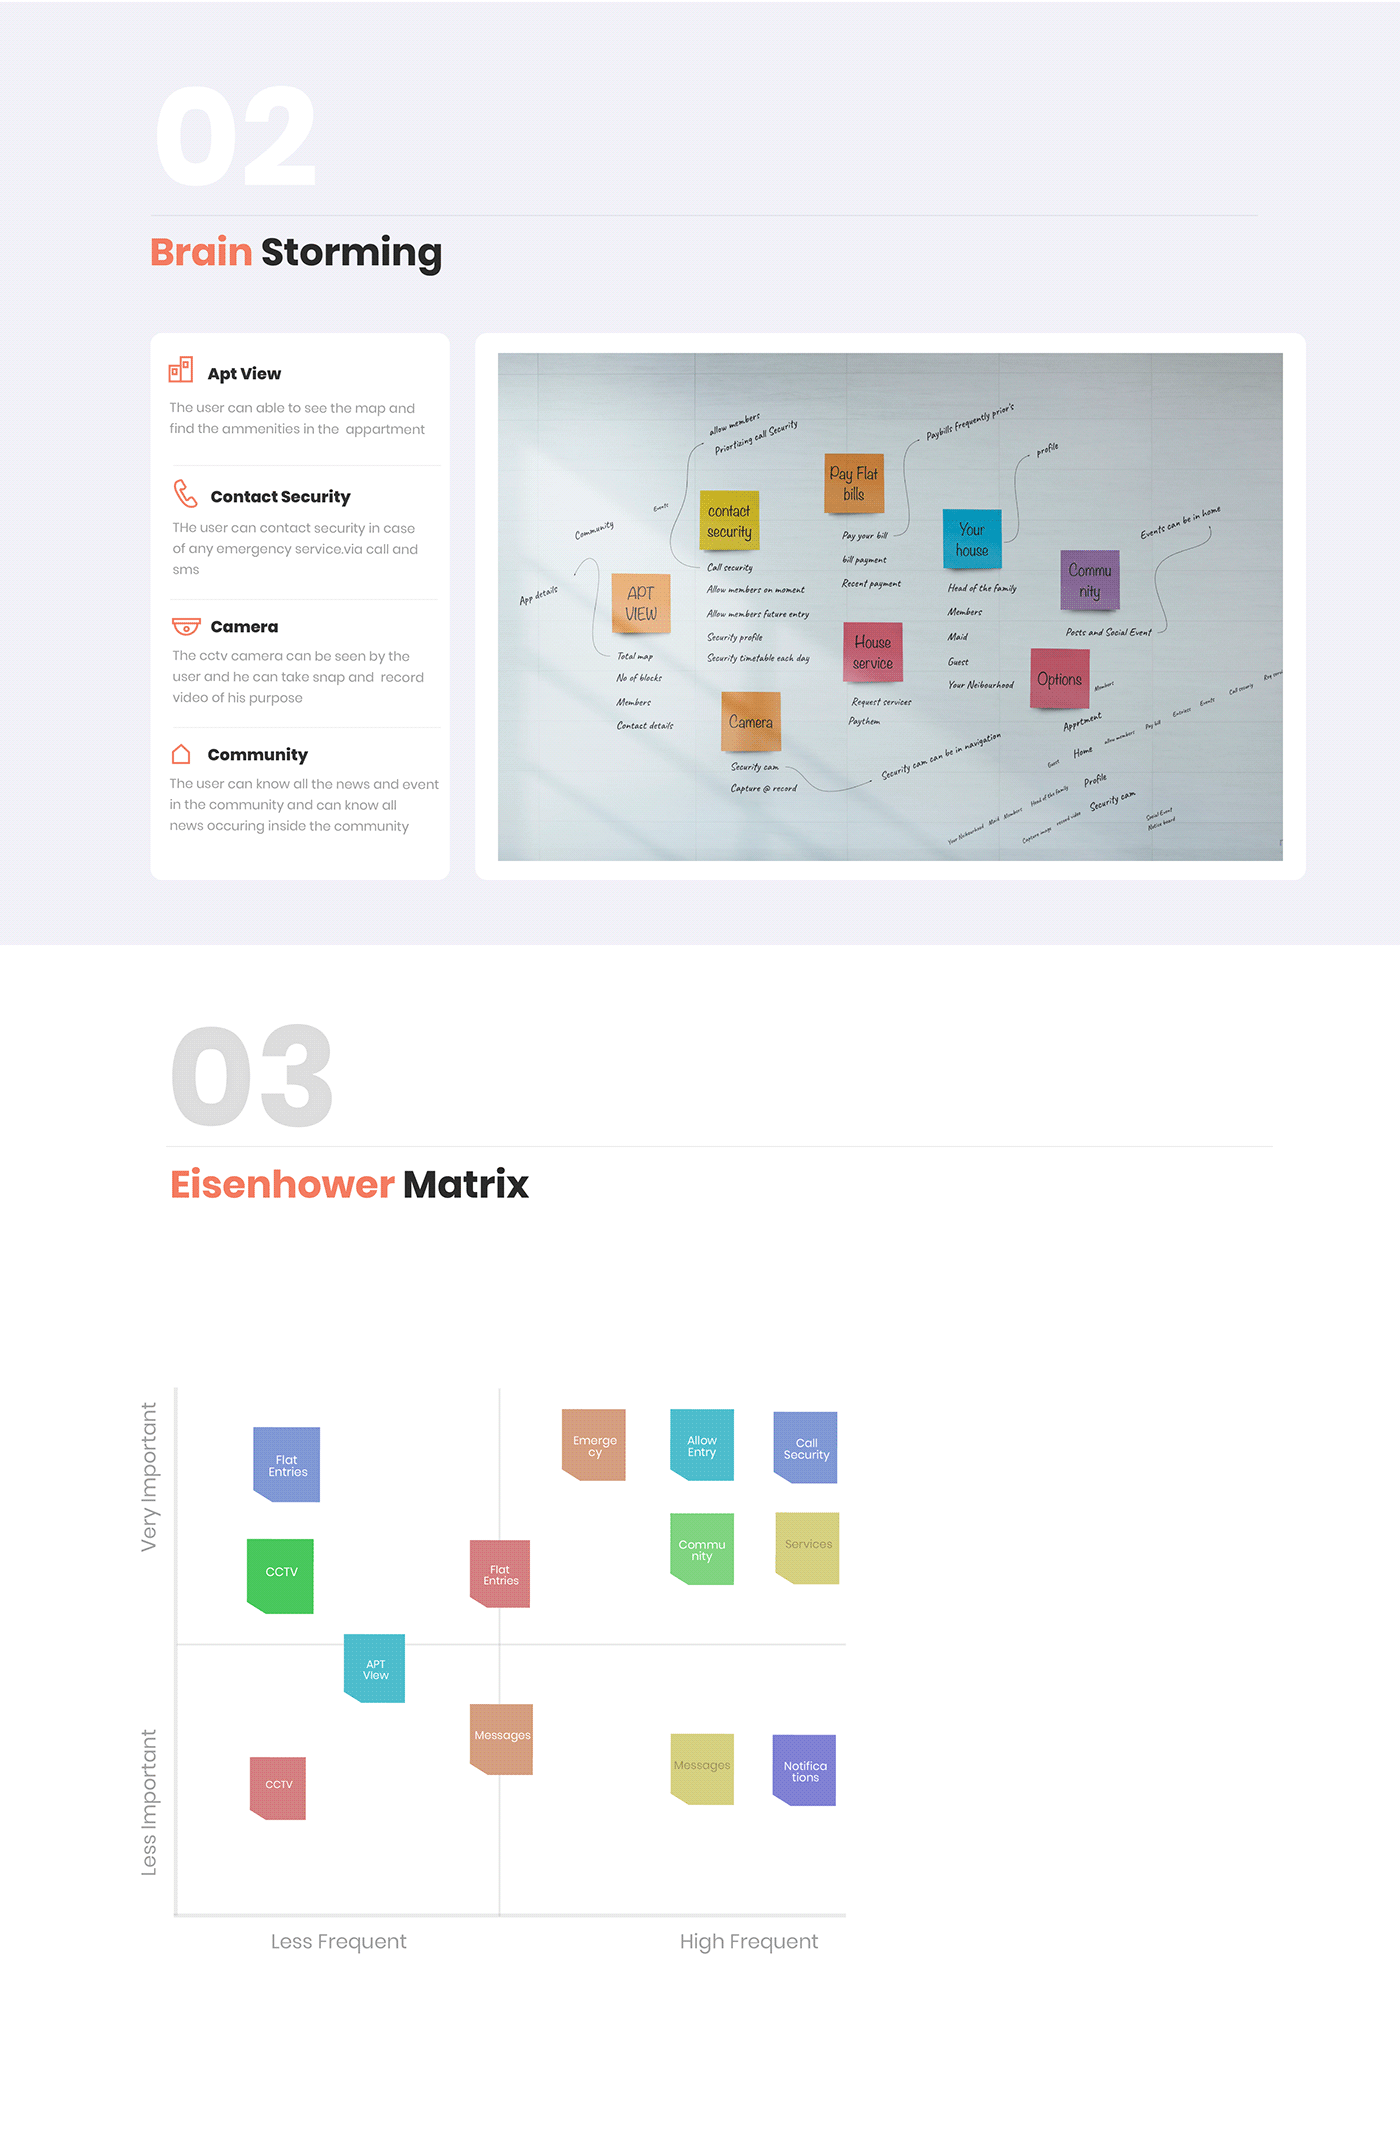 information architecture  interactiondesign mobileapp UI uiux user experience UserInterface ux Webdesign wireframe